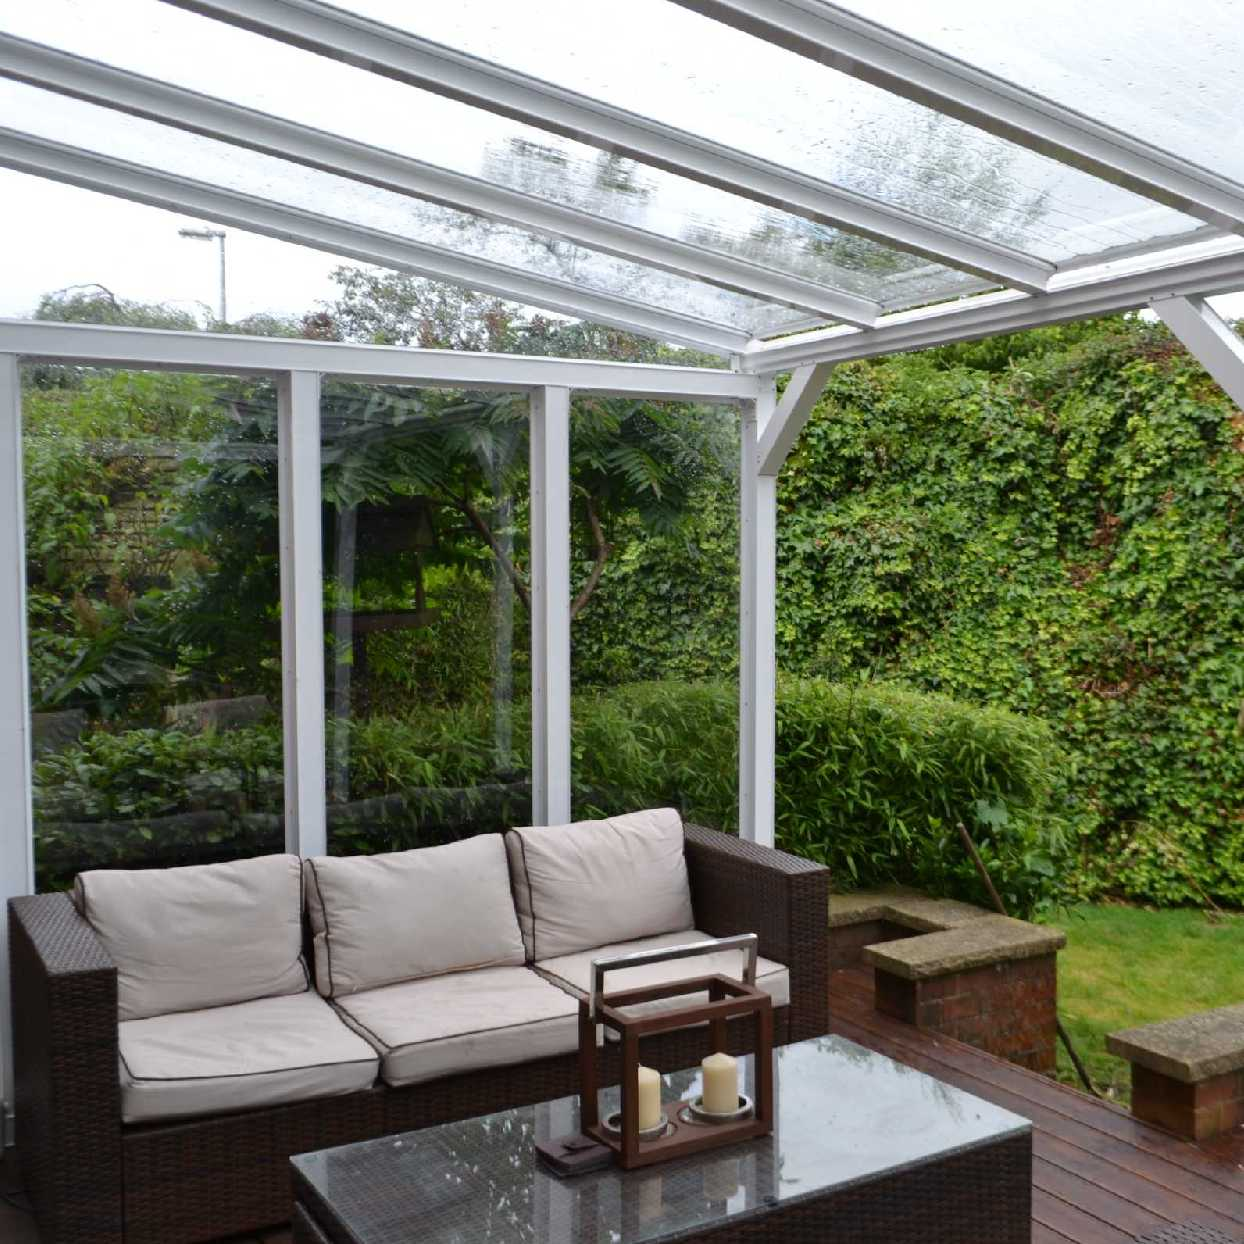 Omega Smart Lean-To Canopy with 6mm Glass Clear Plate Polycarbonate Glazing - 5.6m (W) x 2.0m (P), (3) Supporting Posts